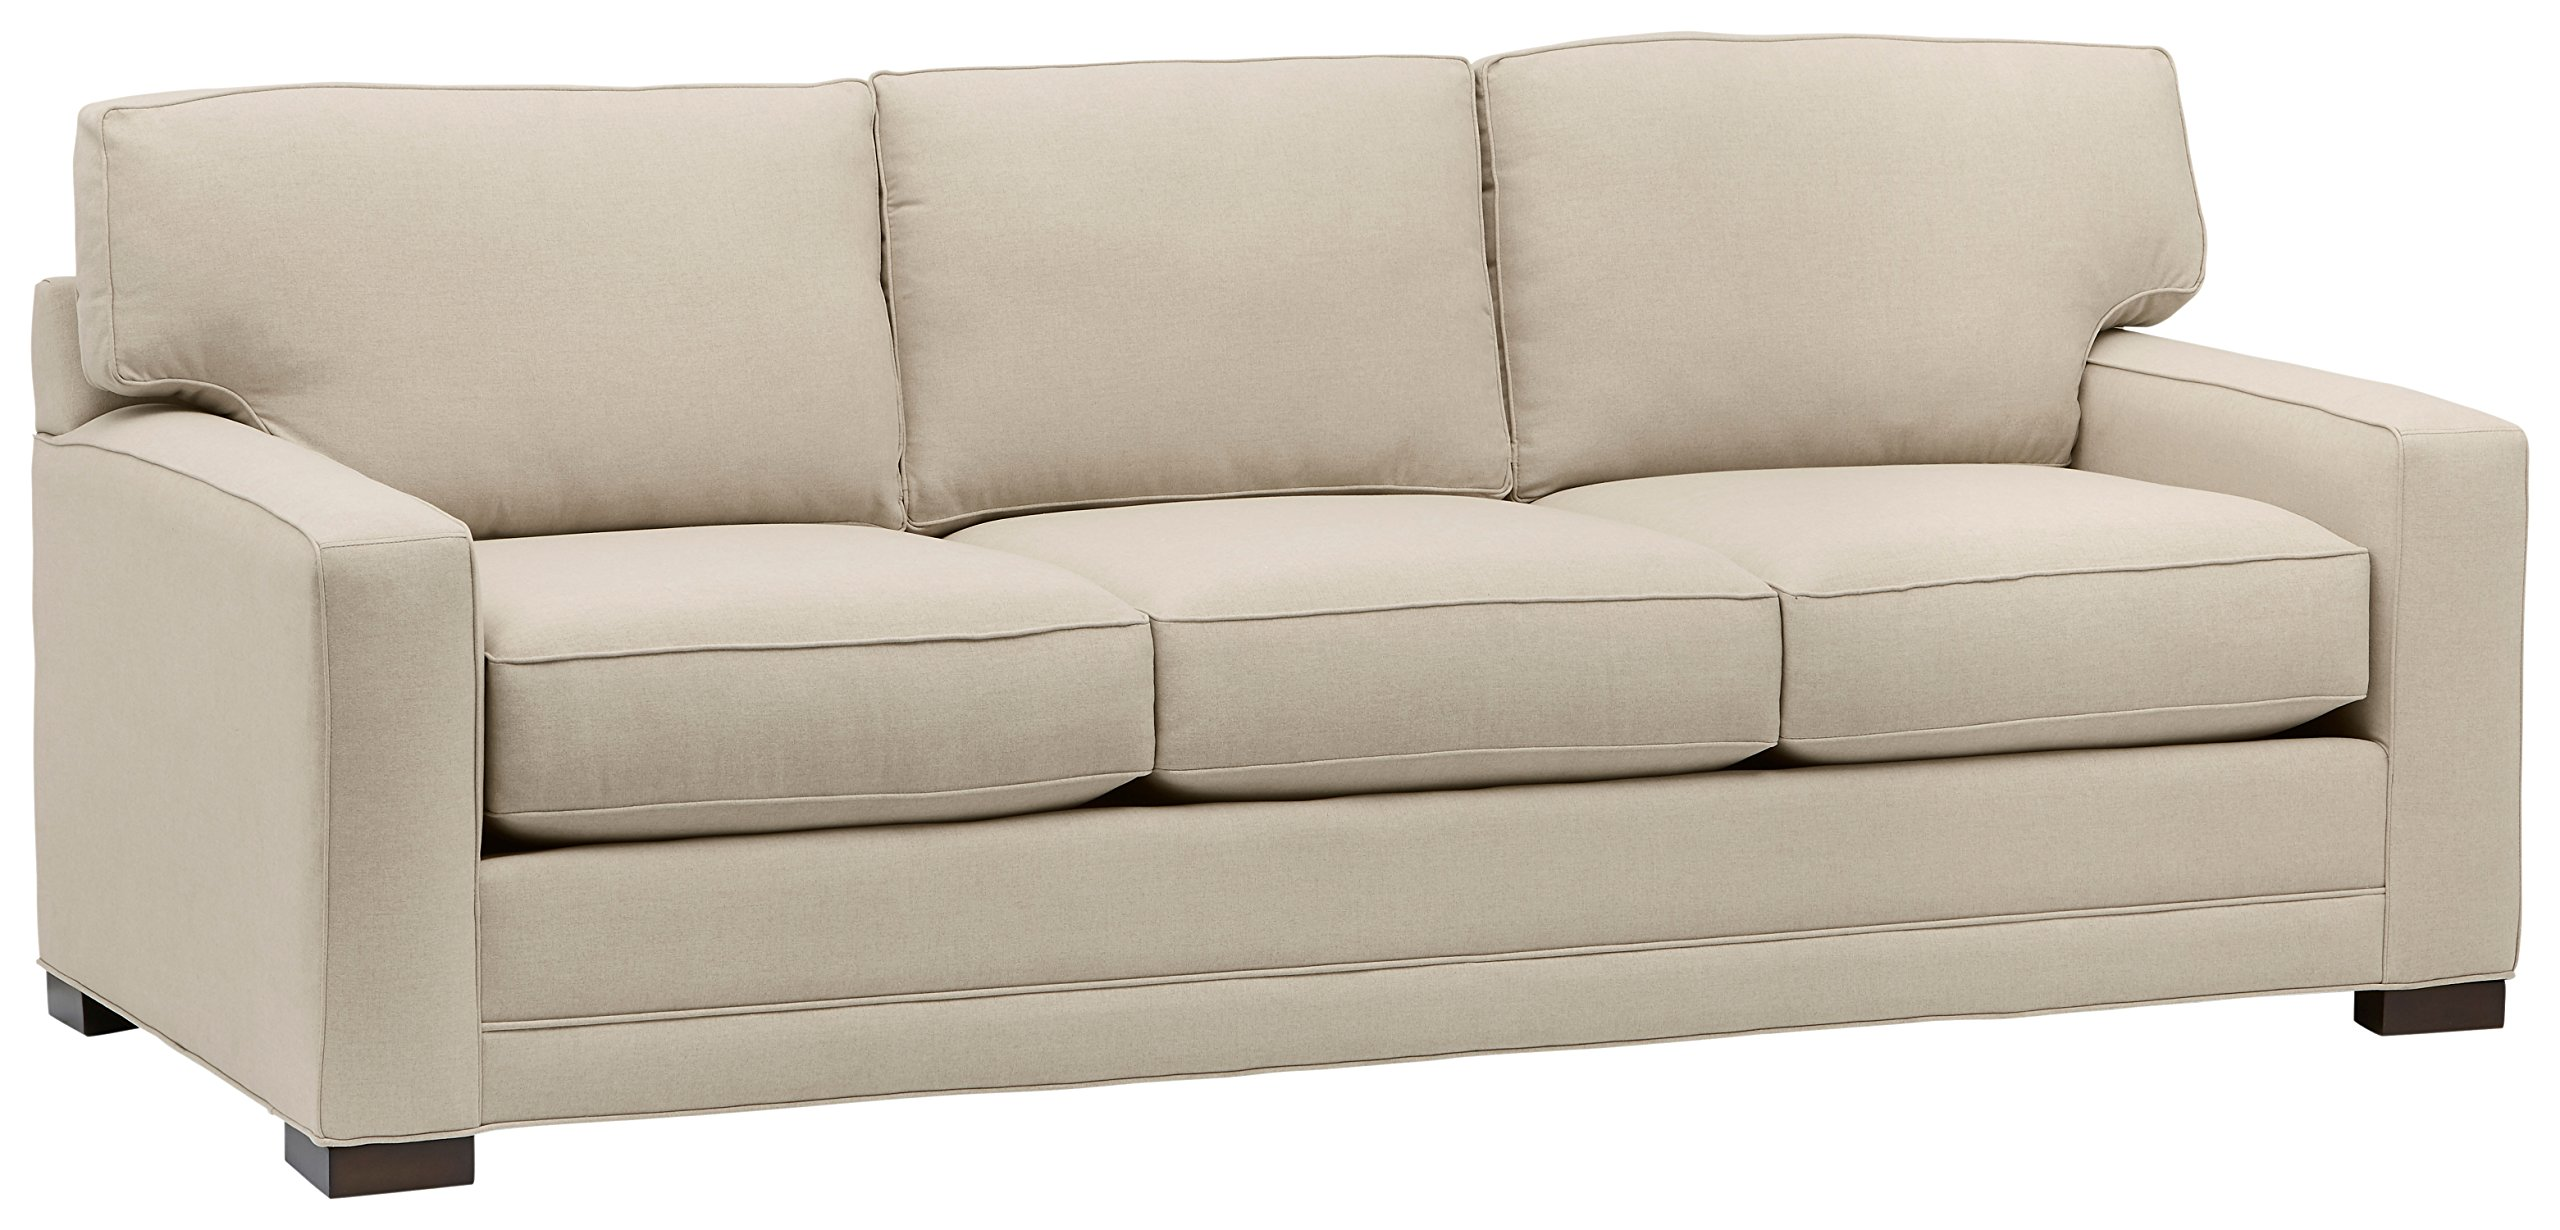 Stone & Beam Dalton Transitional Sofa, 91.5''W, Sand by Stone & Beam